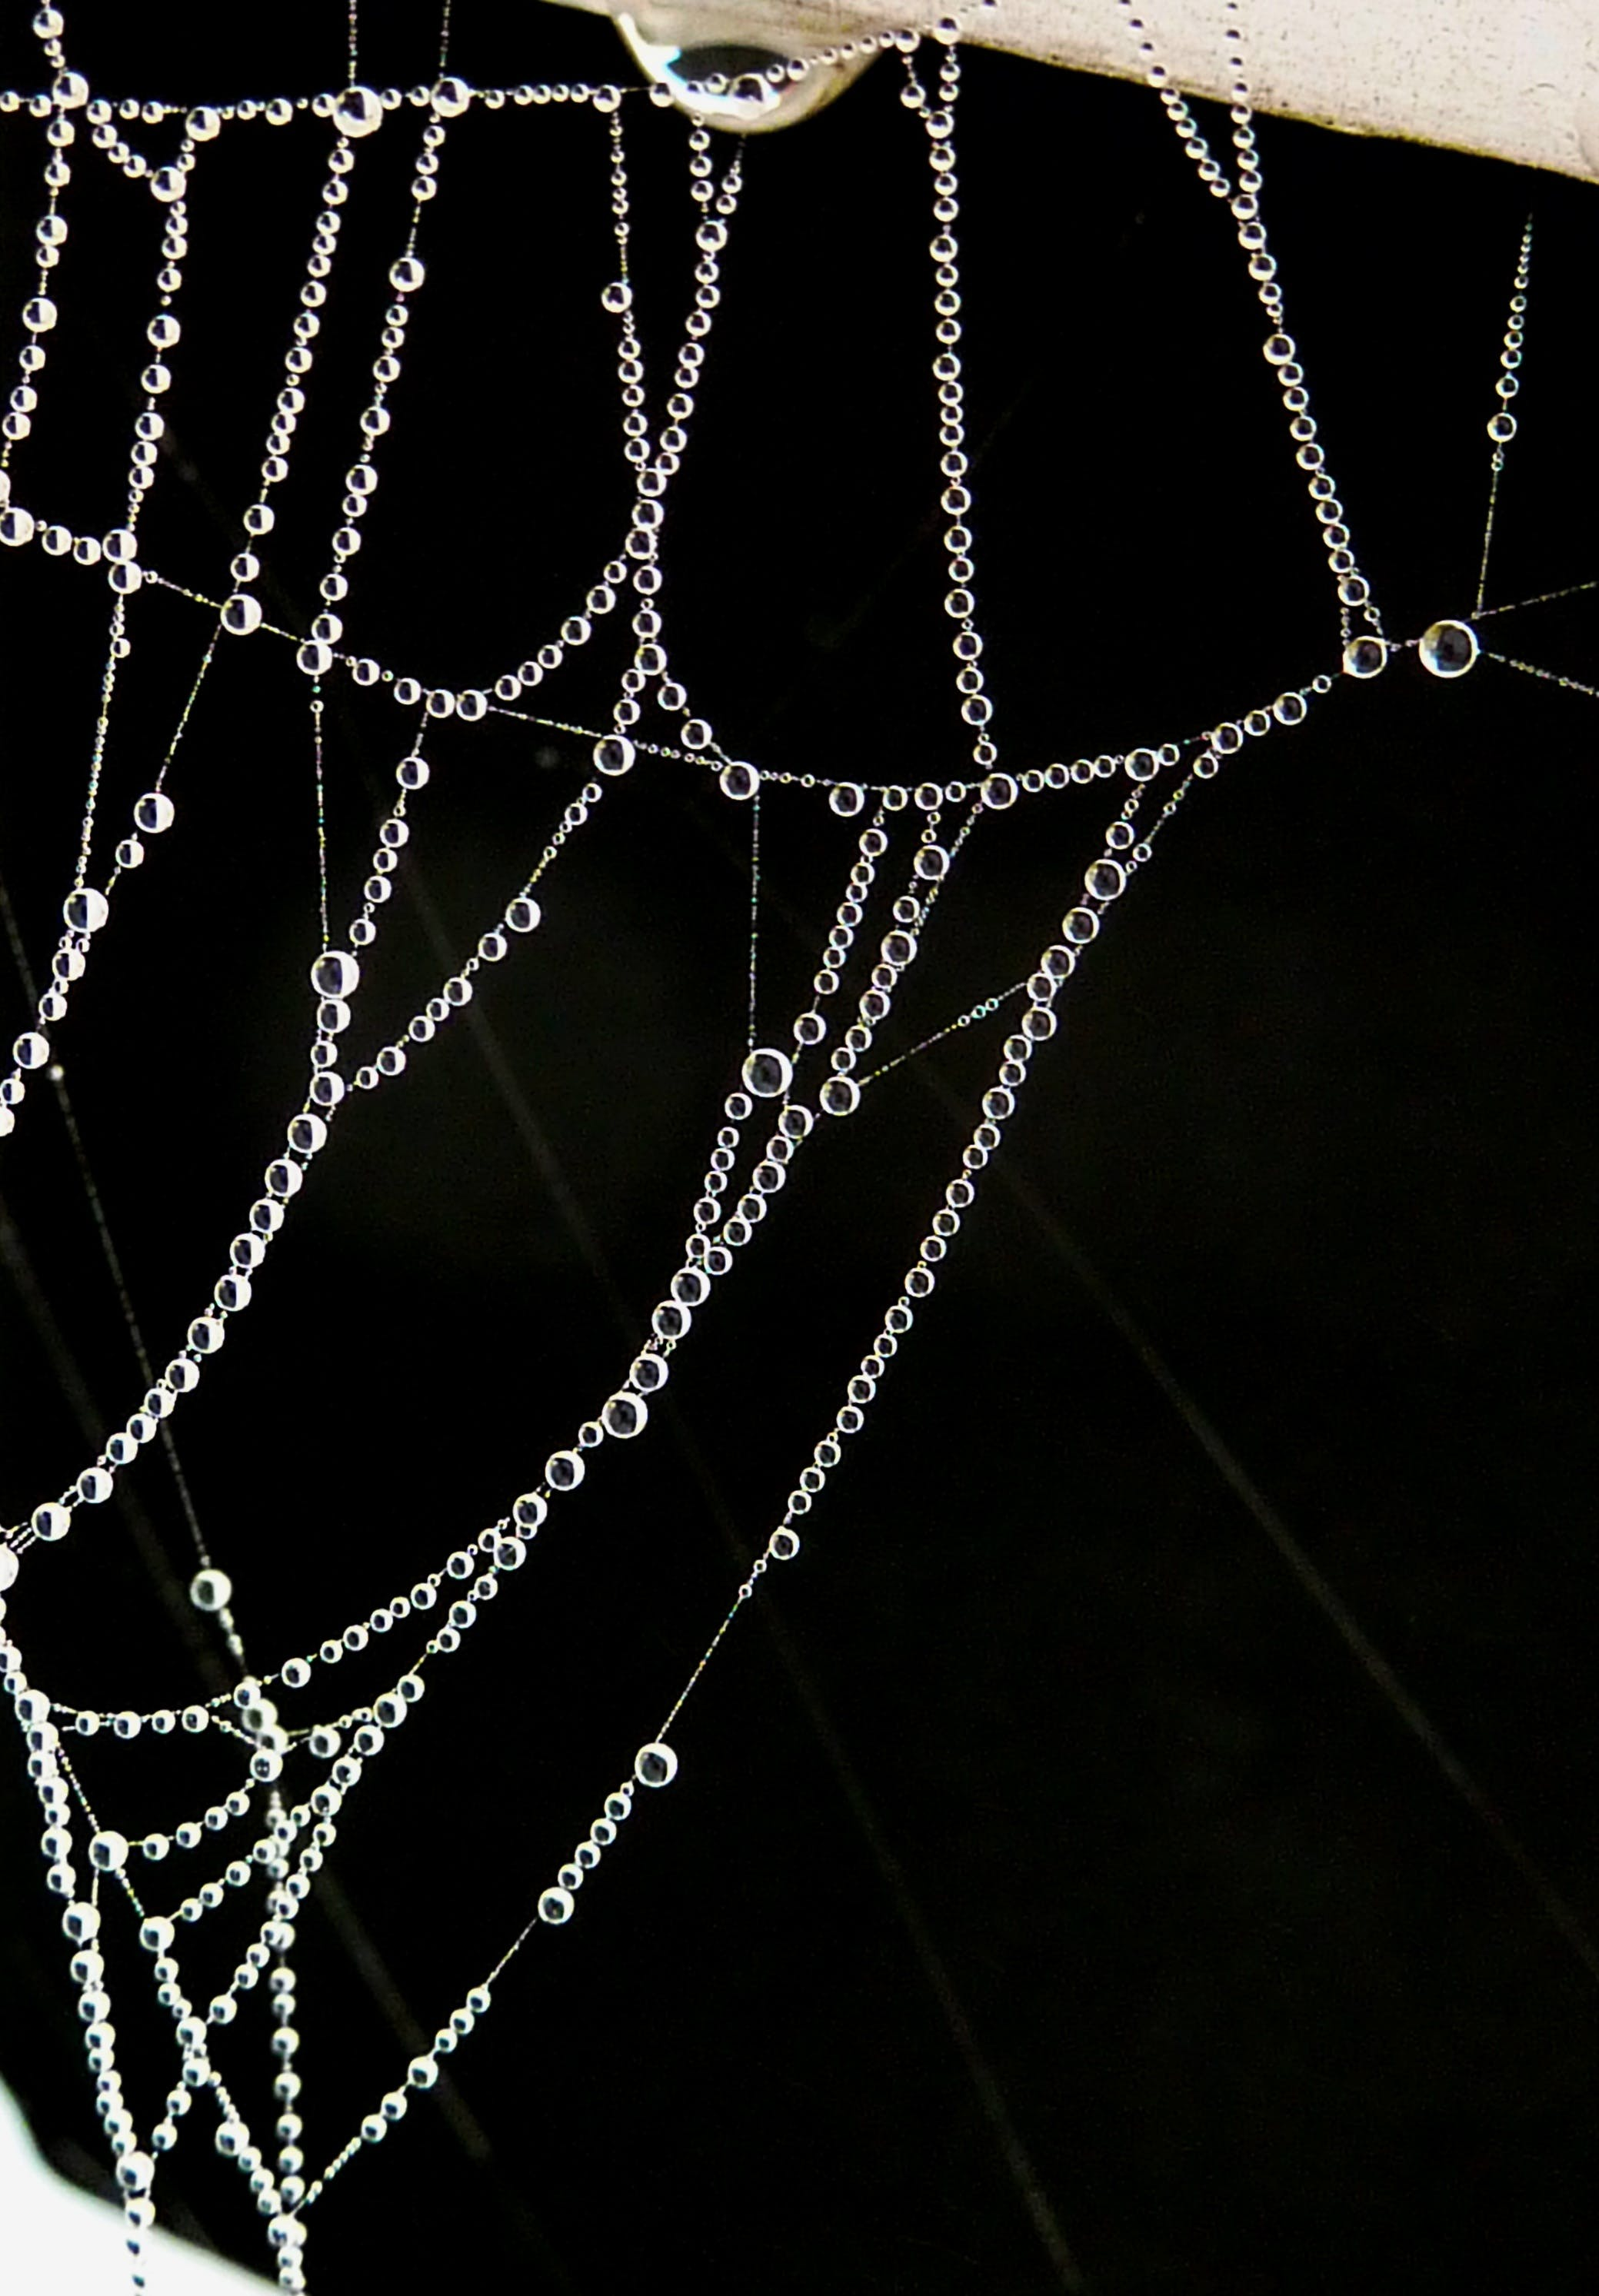 Closeup Photography of Dew Drops on Spider Web